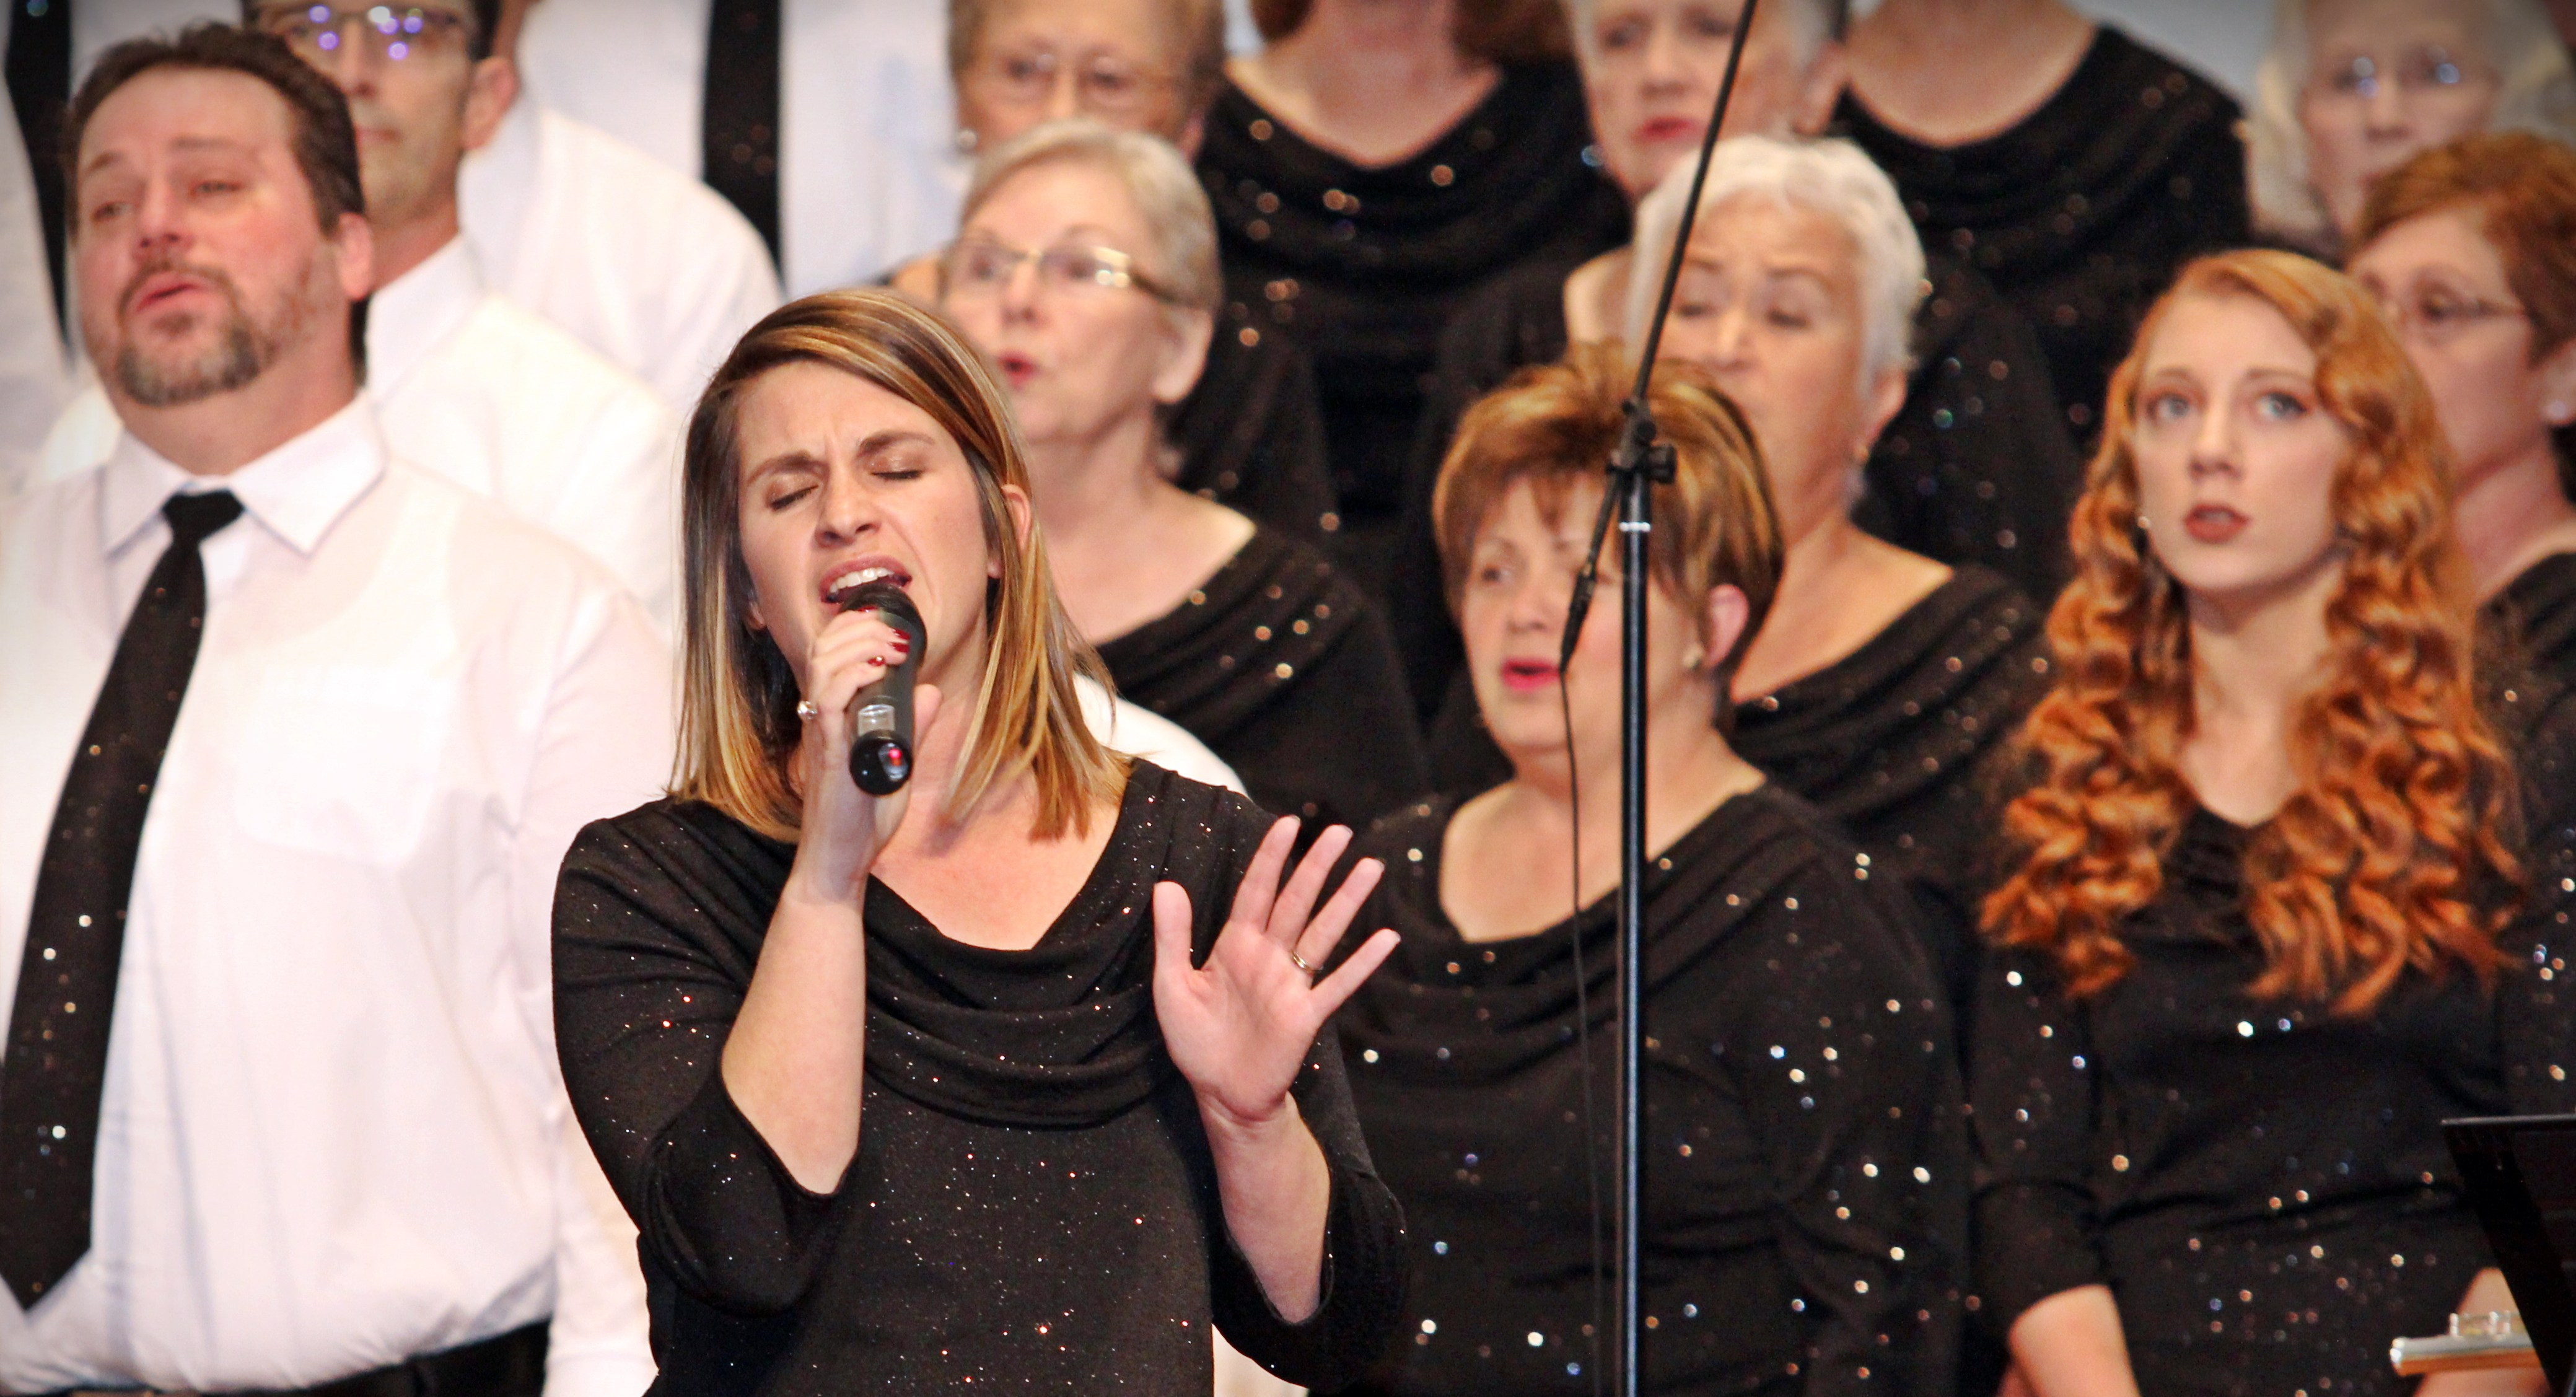 Are Solo-Driven Choir Songs Anti-Intergenerational?